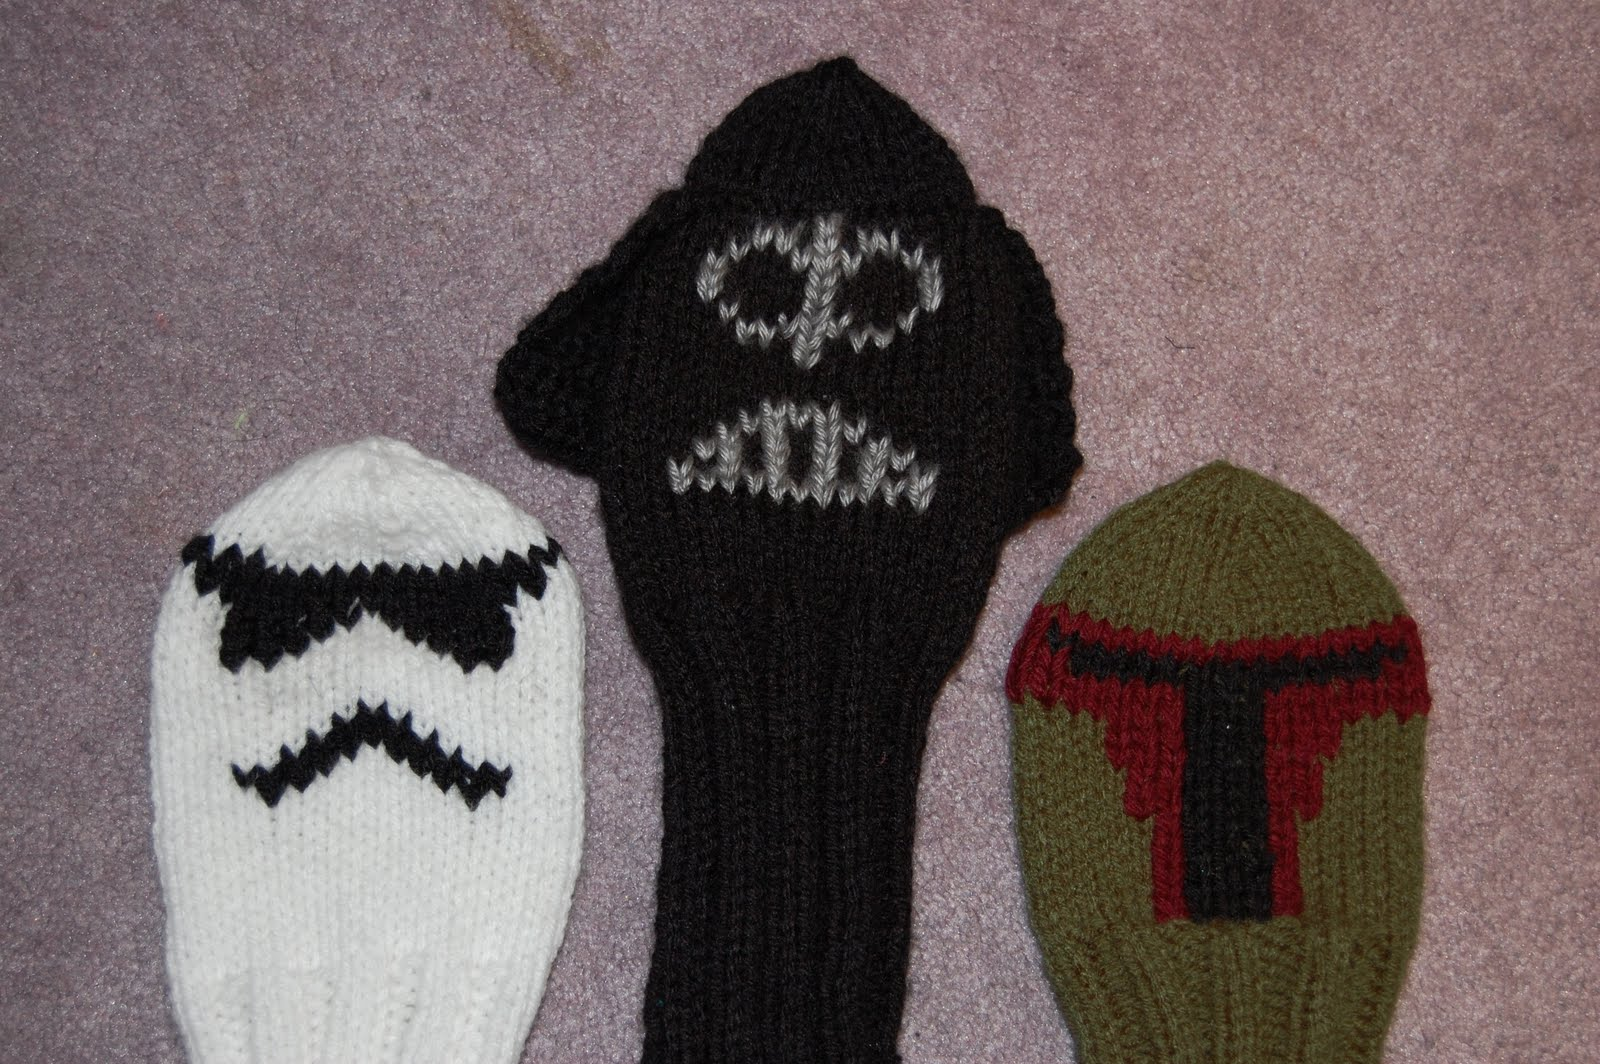 Katiedid Crafts: Darth Vader Golf Club Cover Pattern